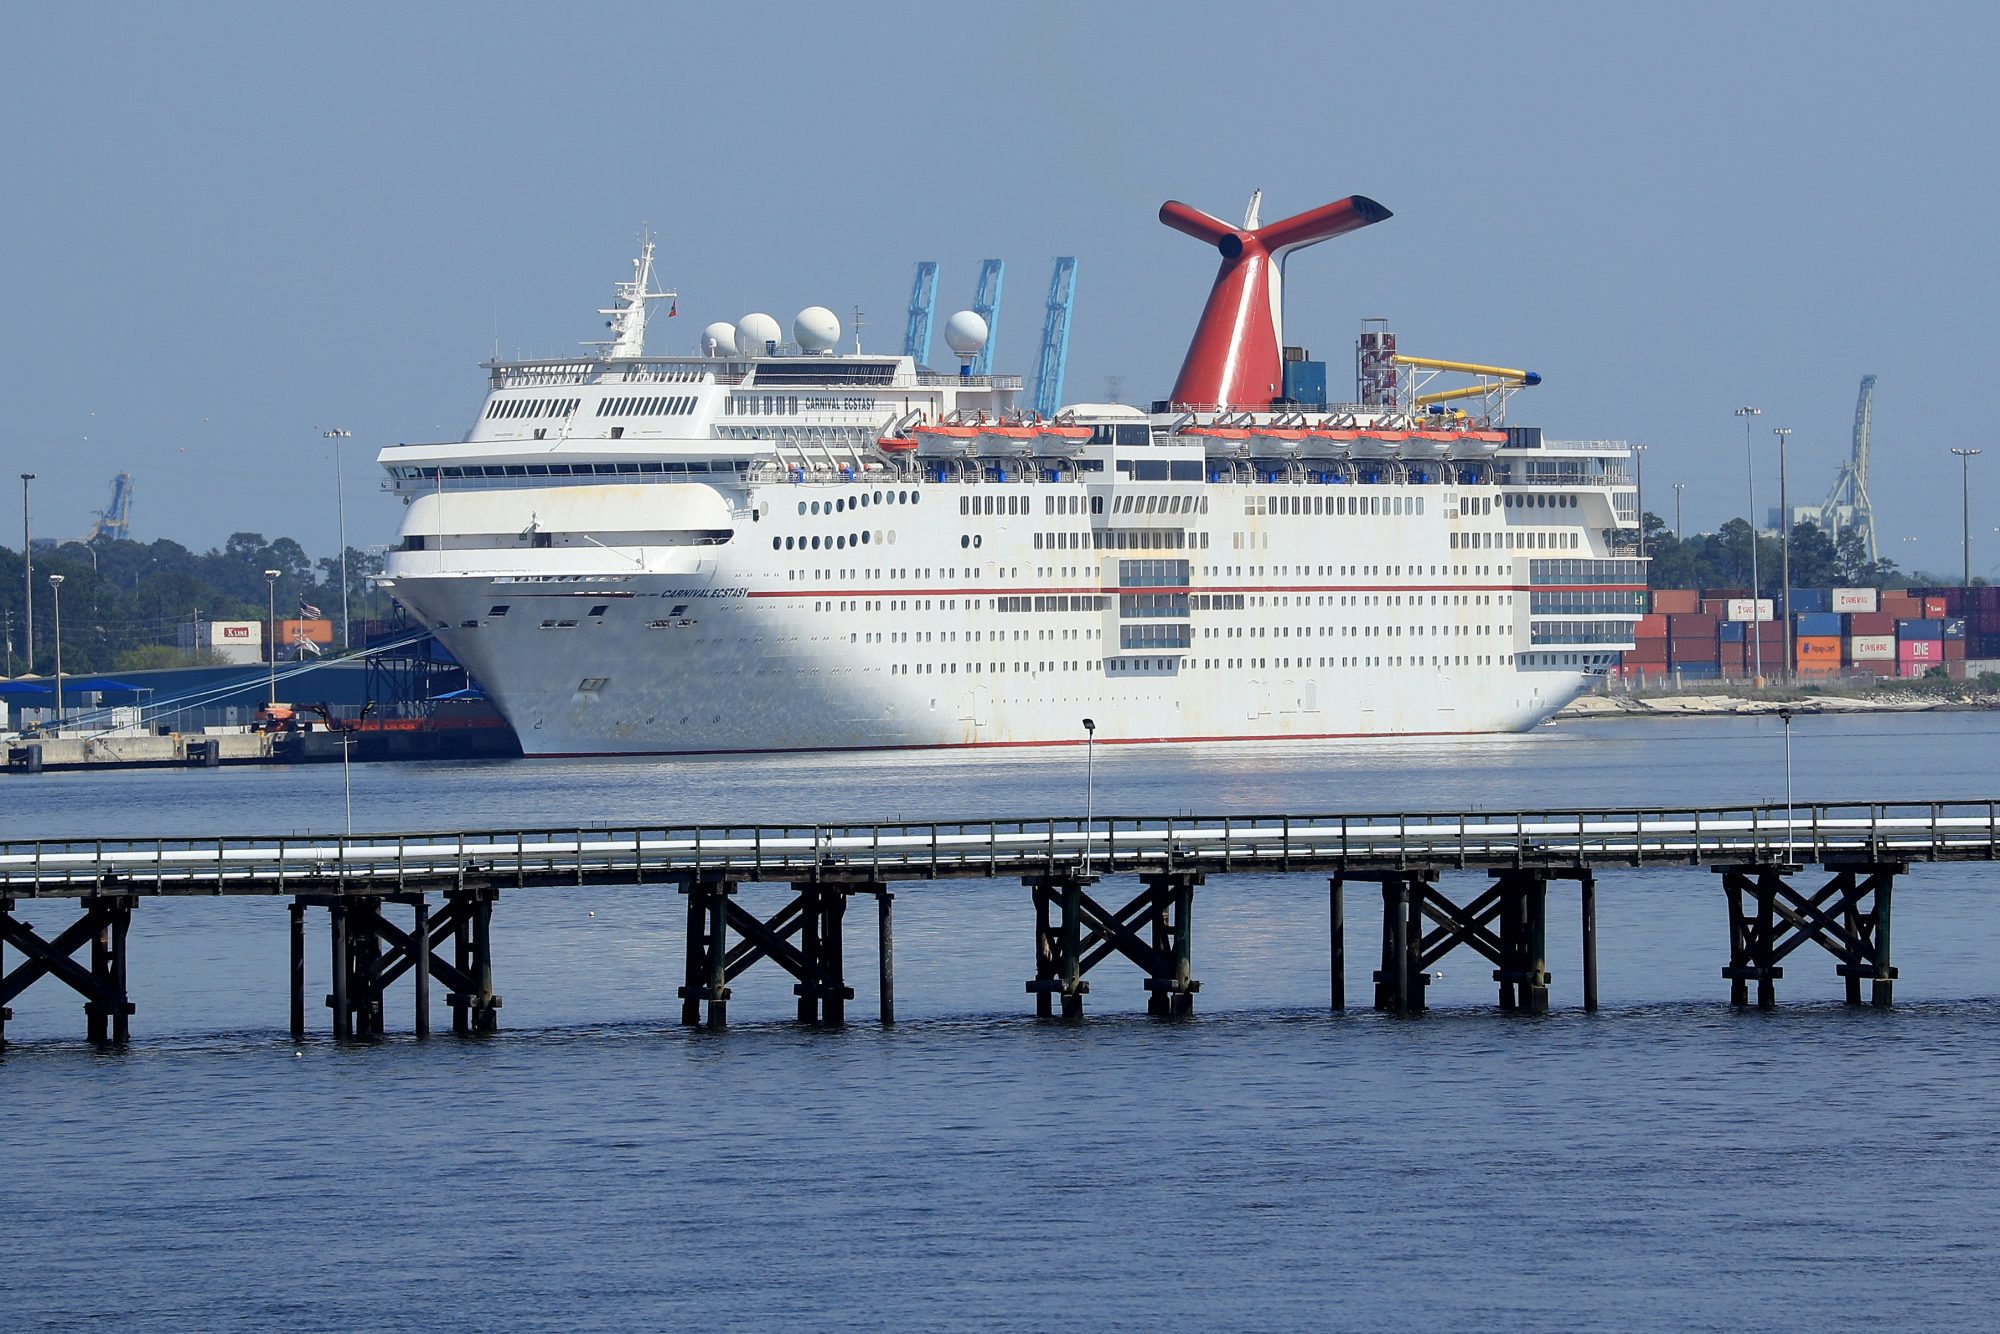 A Carnival cruise ship. Carnival is a member of the Cruise Lines International Association.